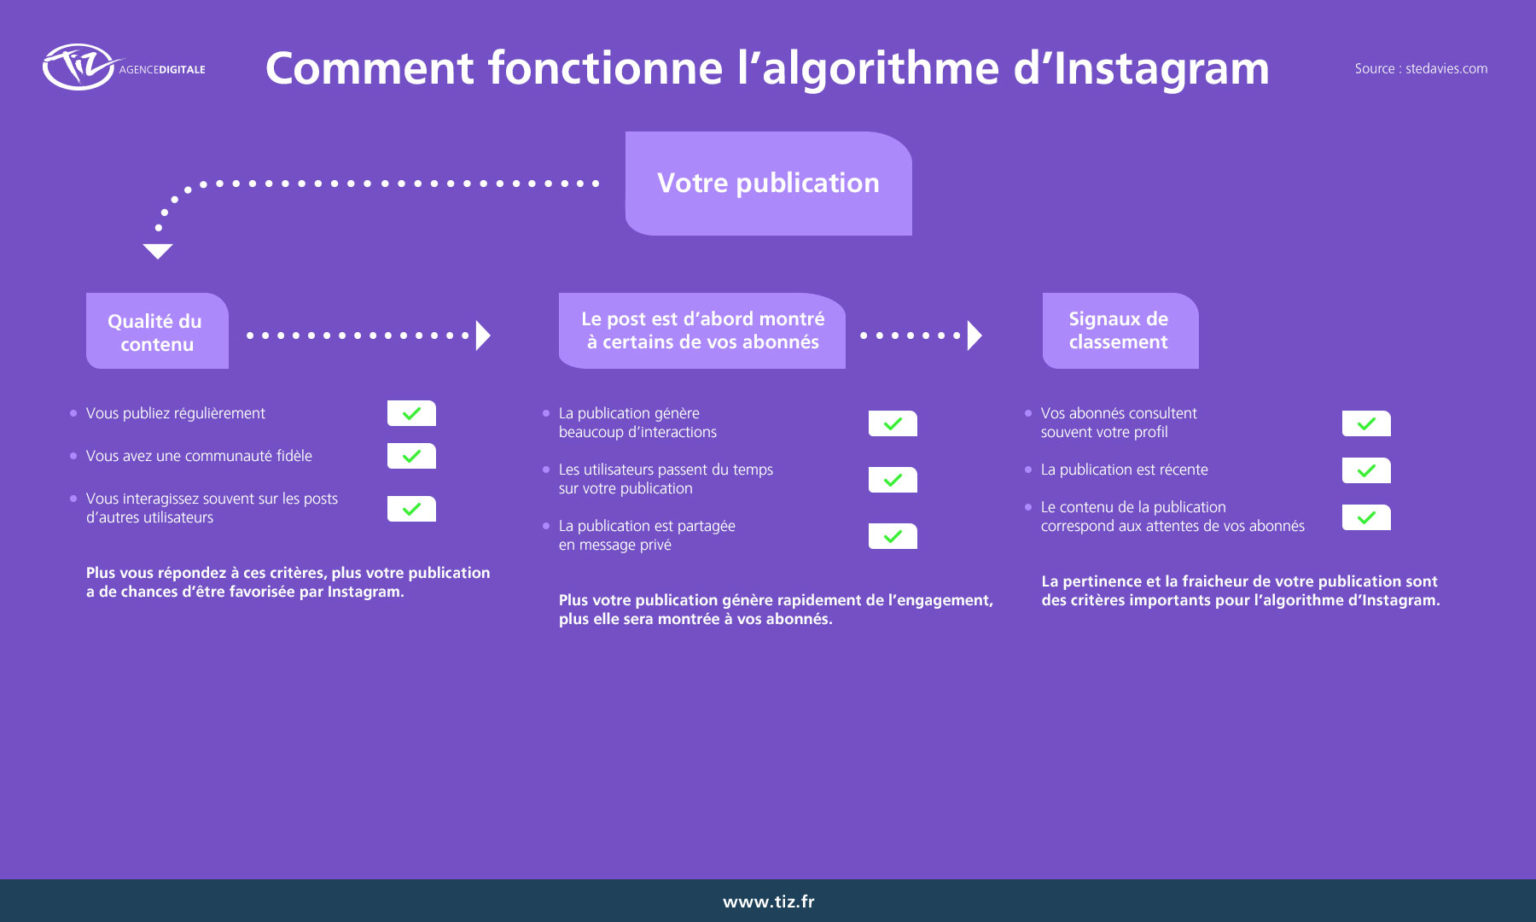 Comment hacker Linkedin, Twitter, Youtube, Facebook, Pinterest, Instagram... ? Jouez simplement avec l'algorithme ! 8